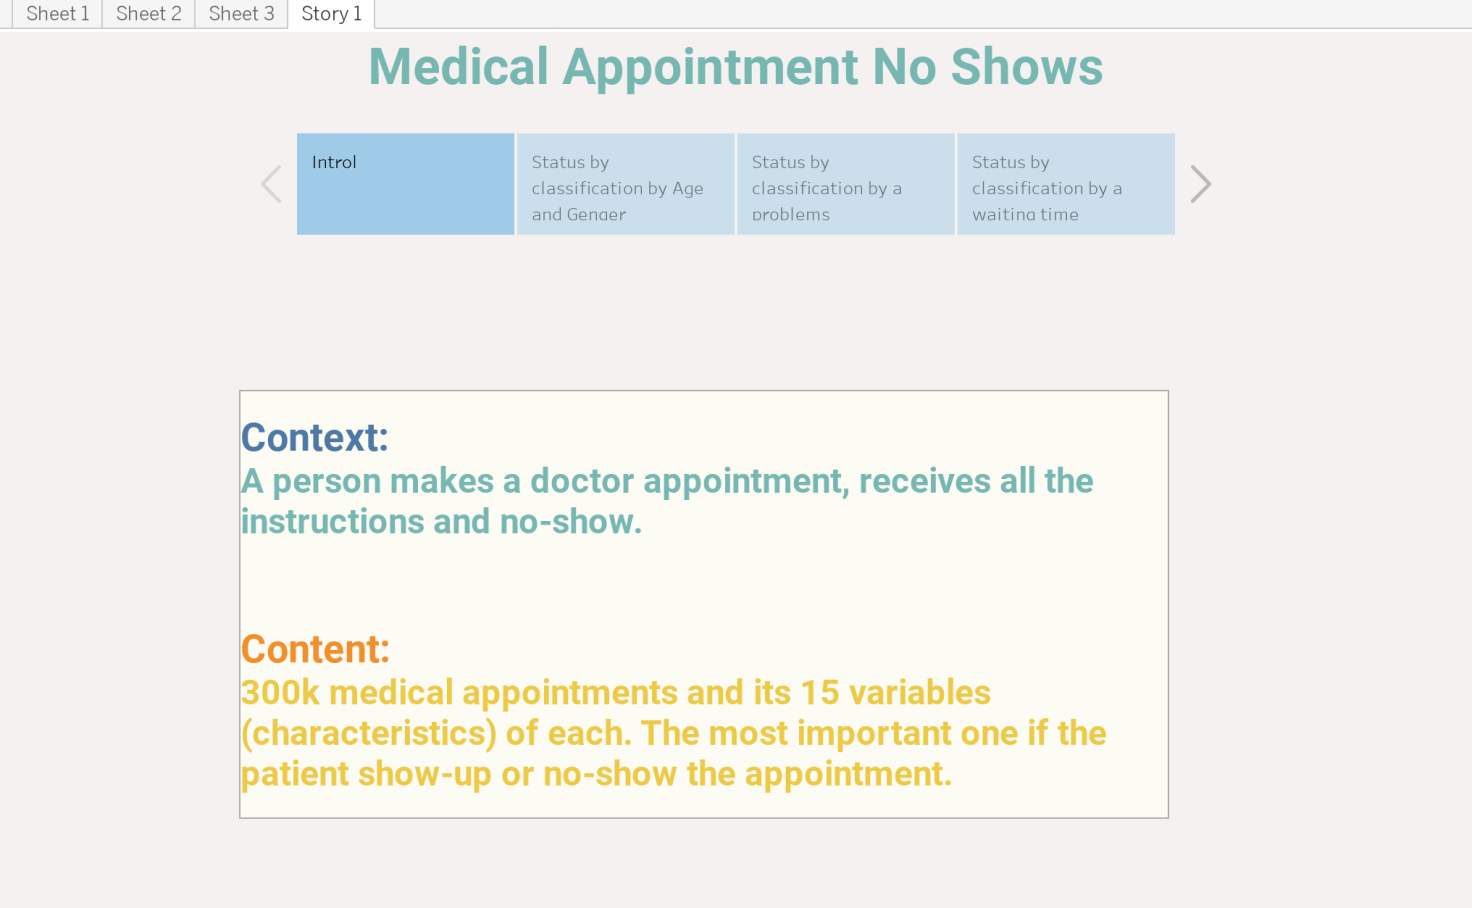 Medical Appointment No Shows2 - naritsara | Tableau Public